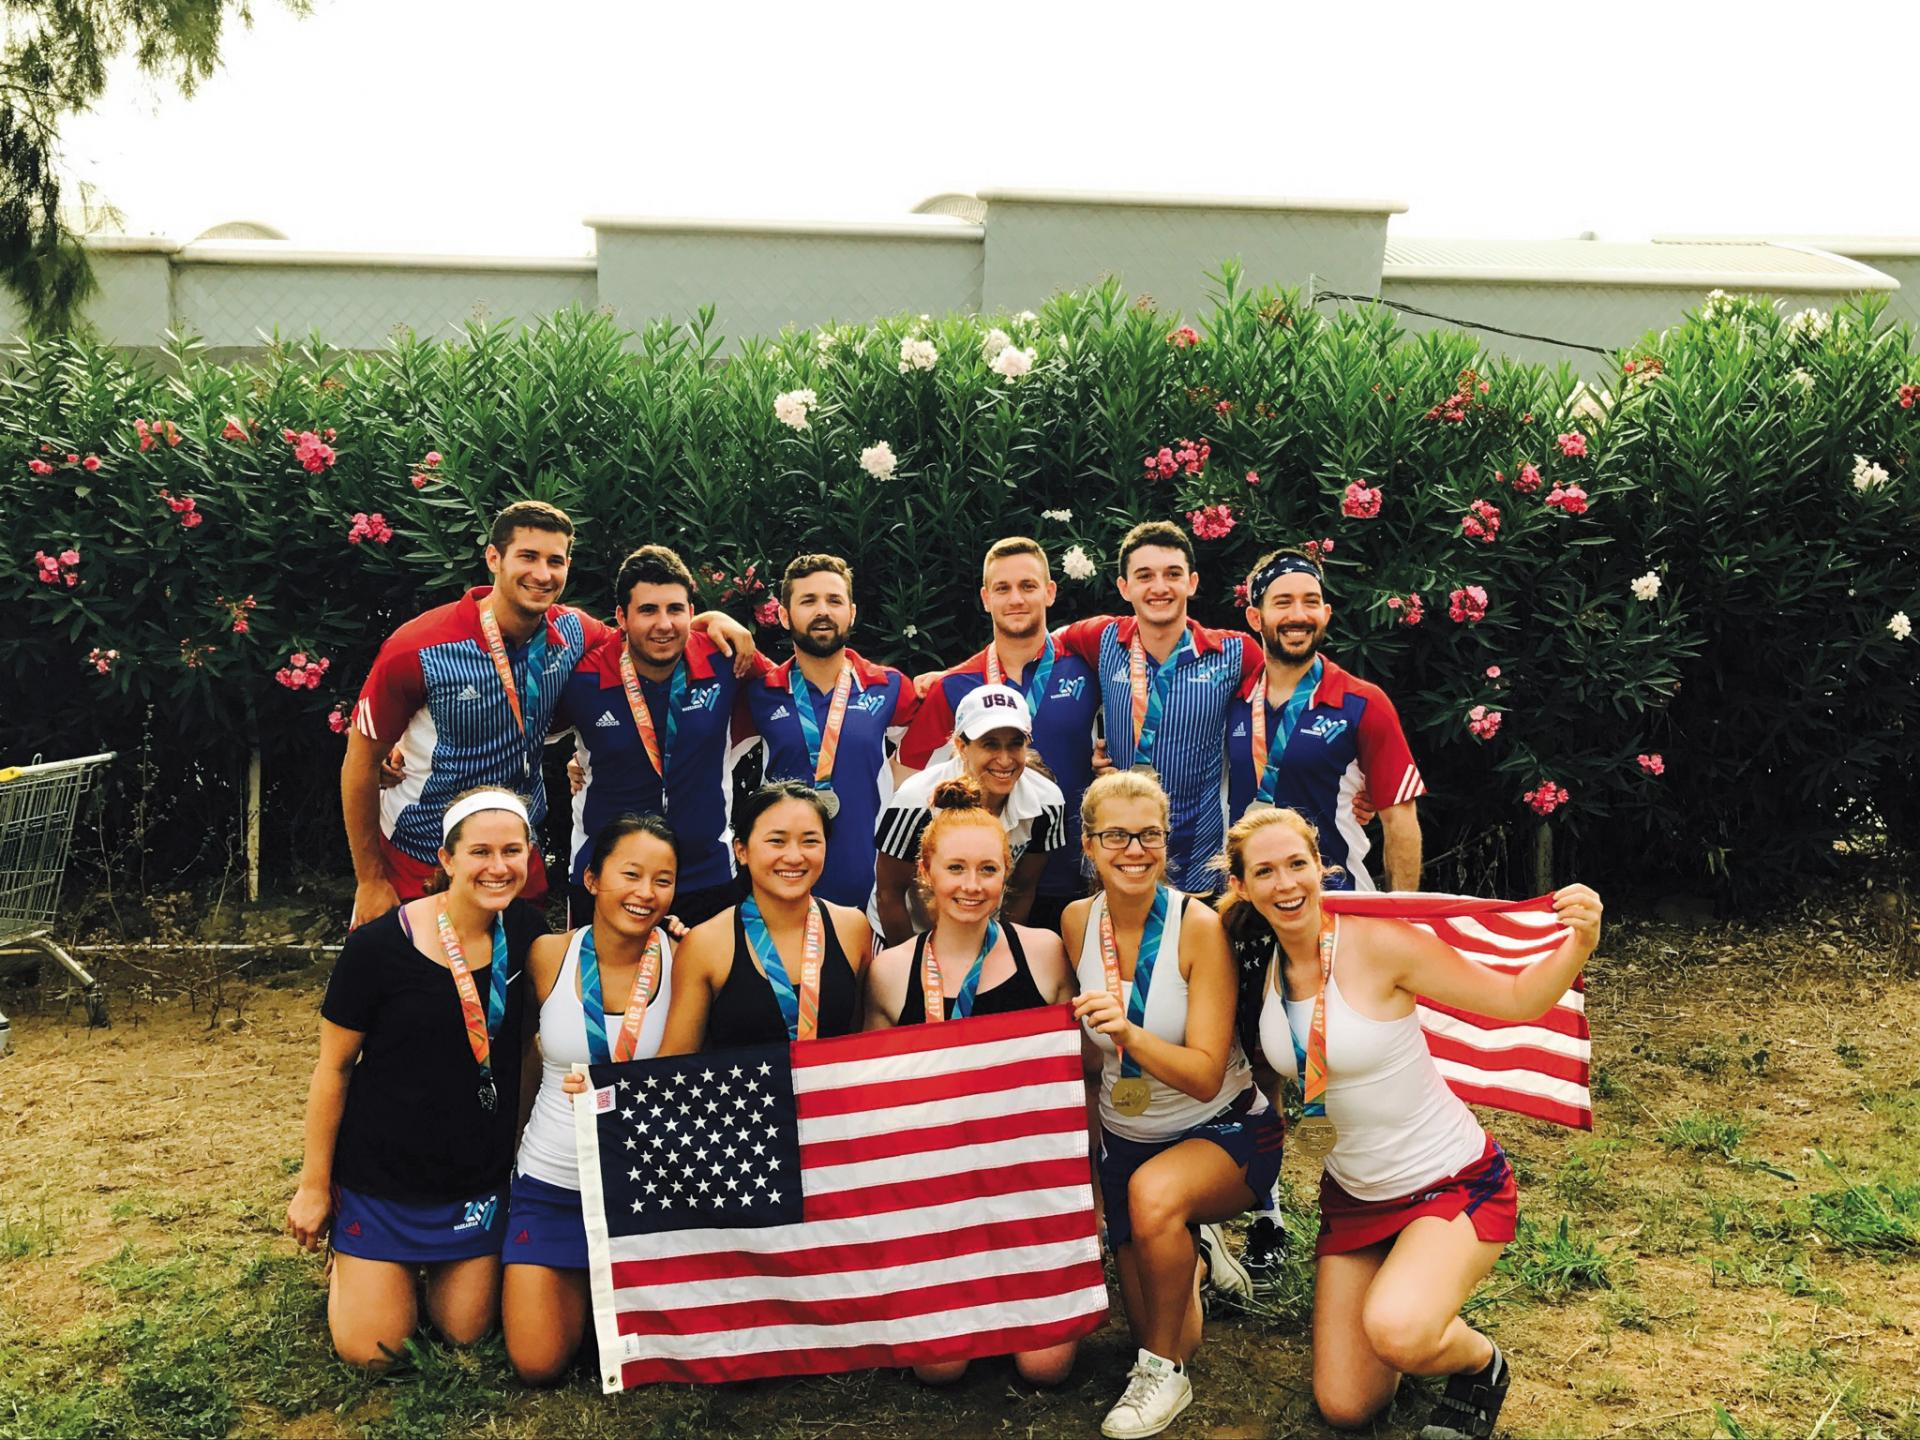 Zoe Kagan '17, far right, with members of Team USA. (Photo: Team USA)